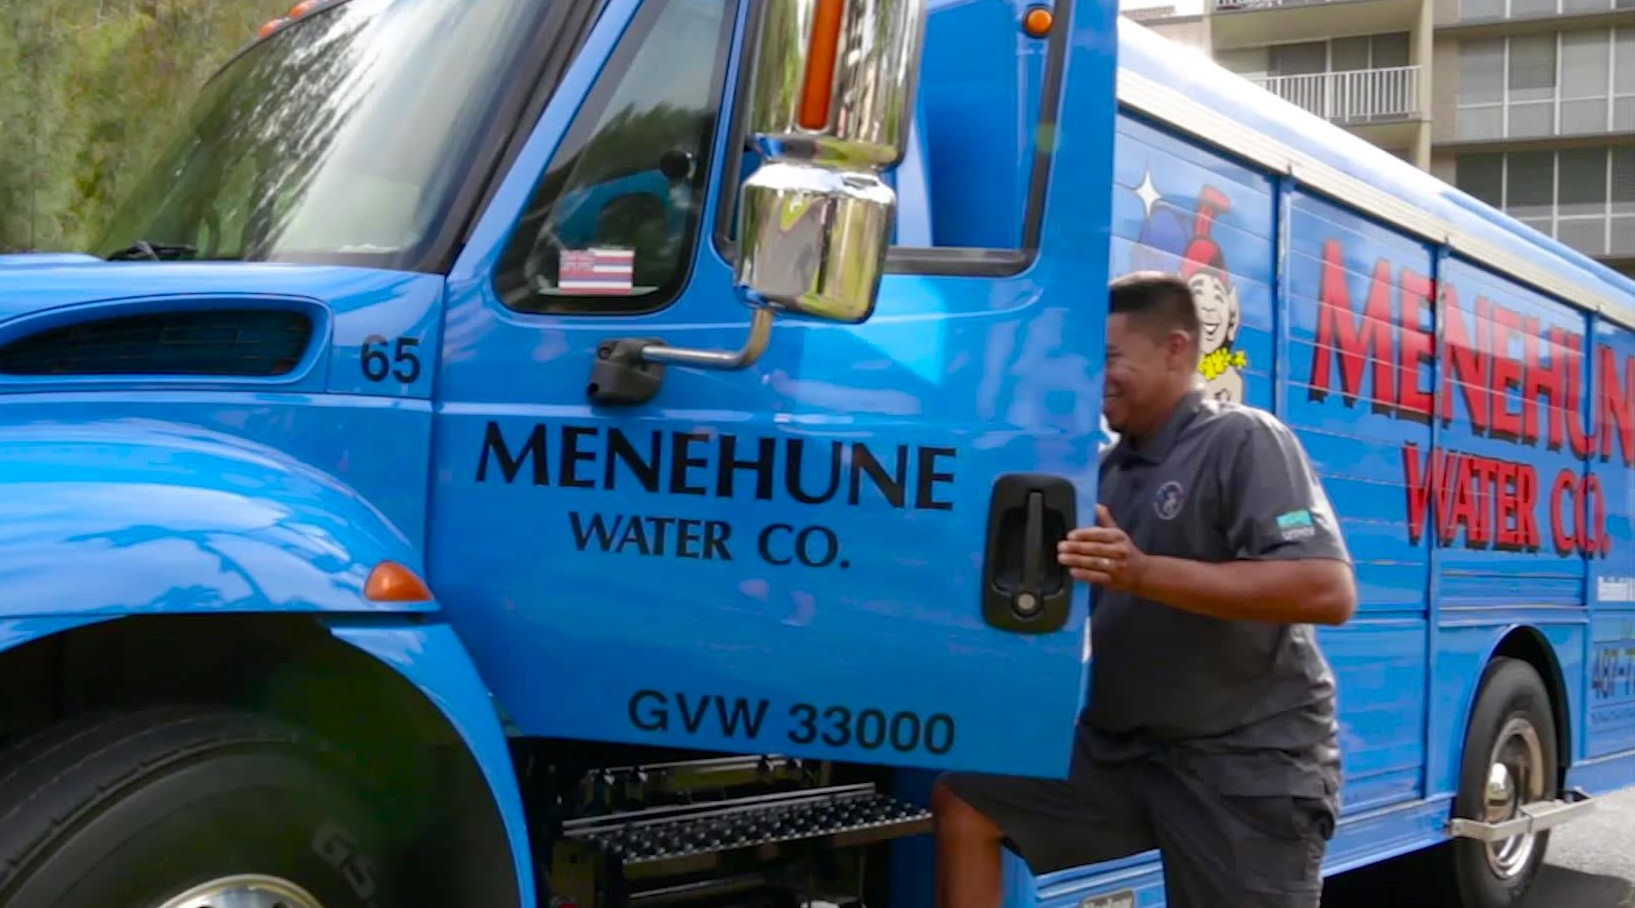 Menehune Water Co (Oahu)